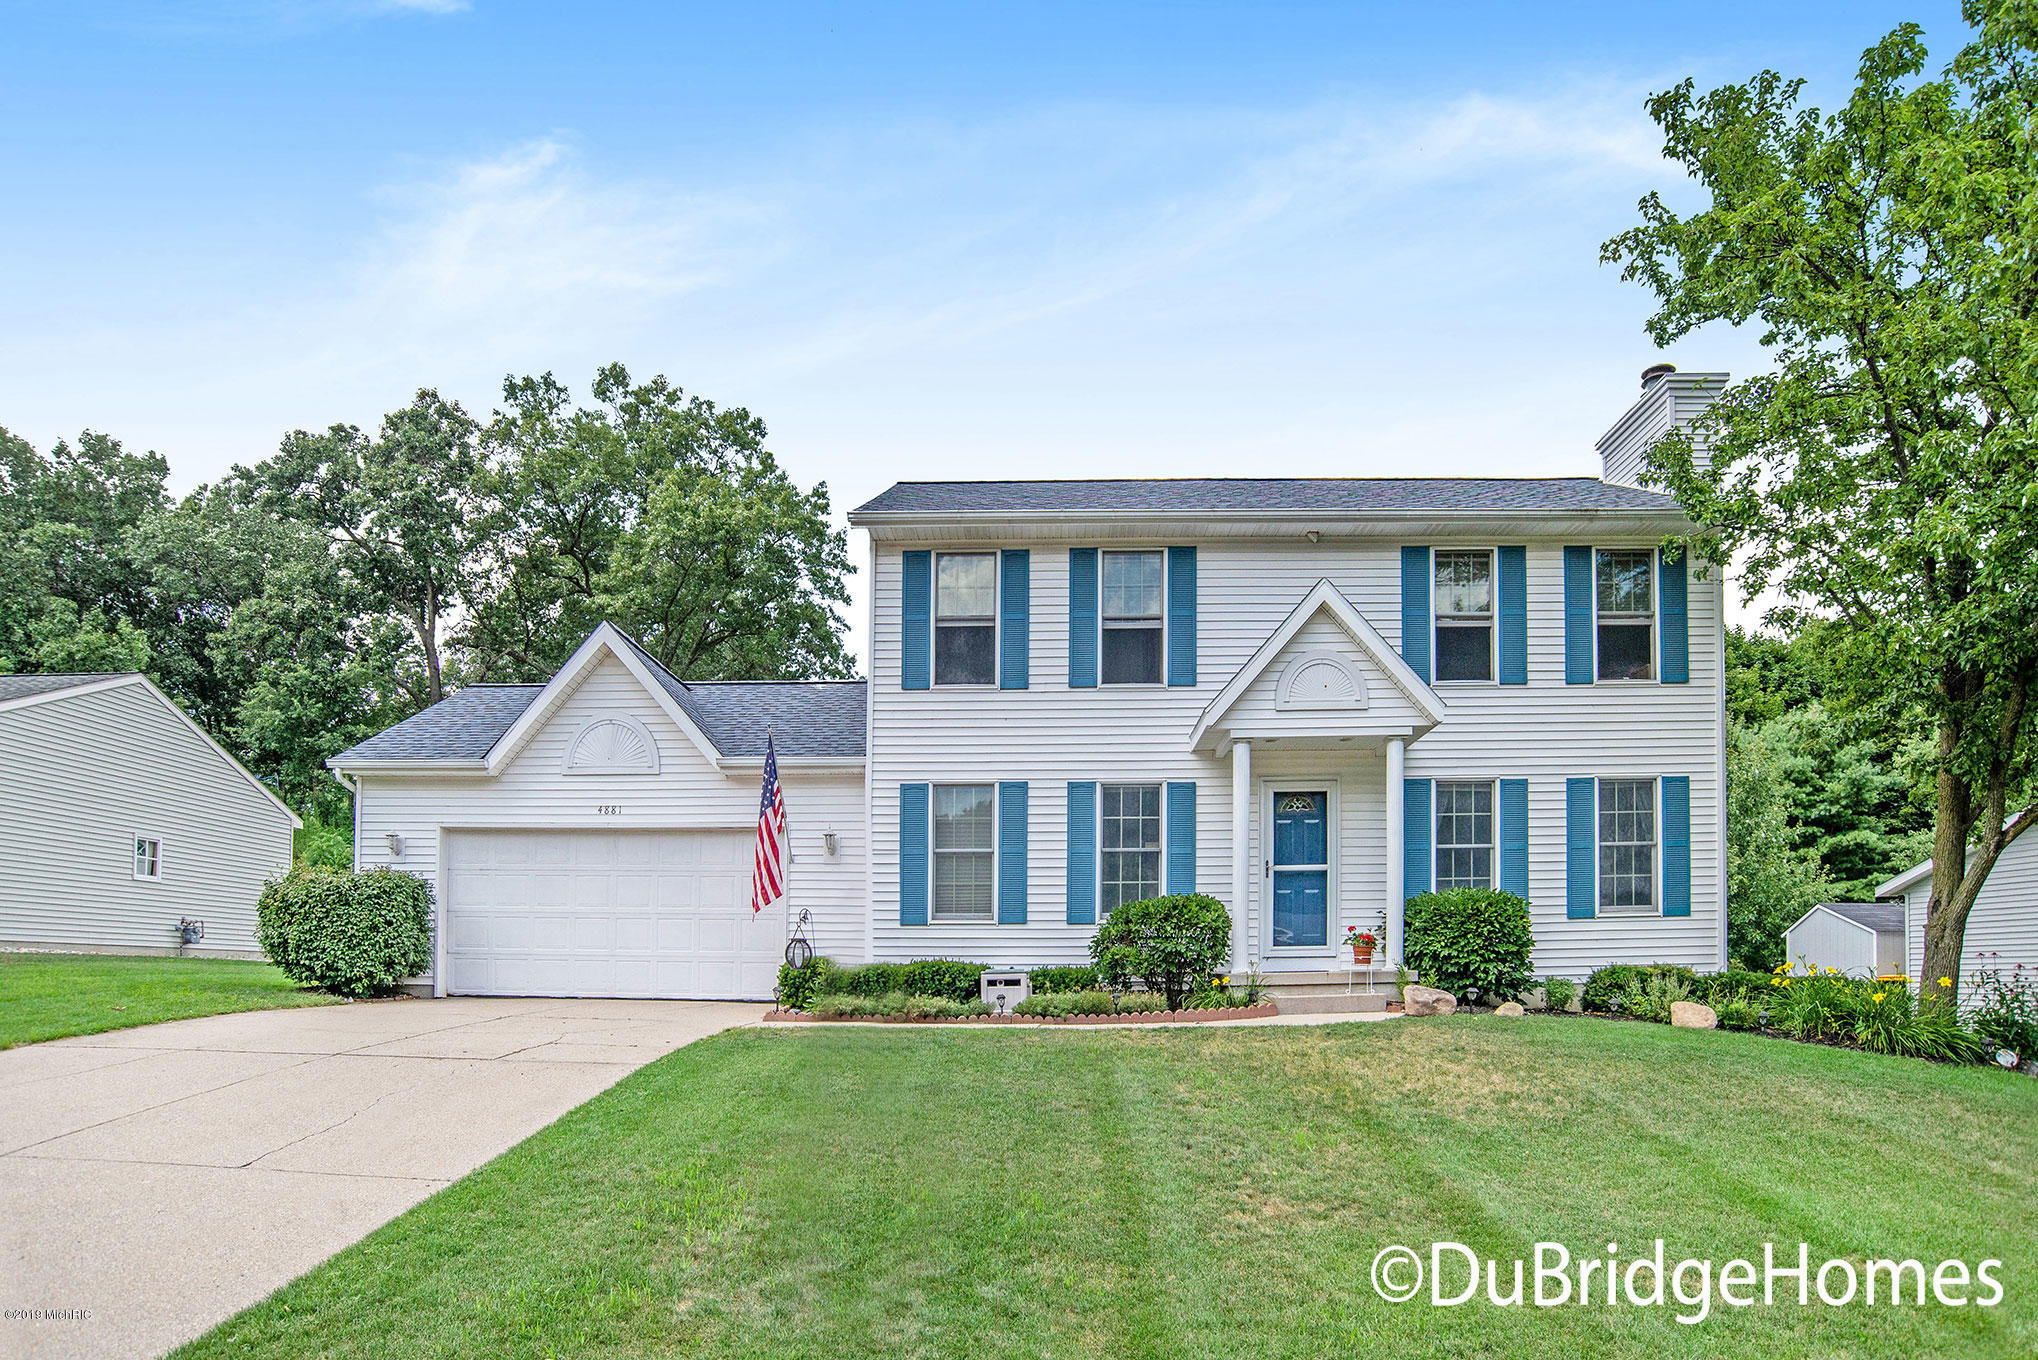 4881 Breckenridge NE Drive, Grand Rapids, Michigan